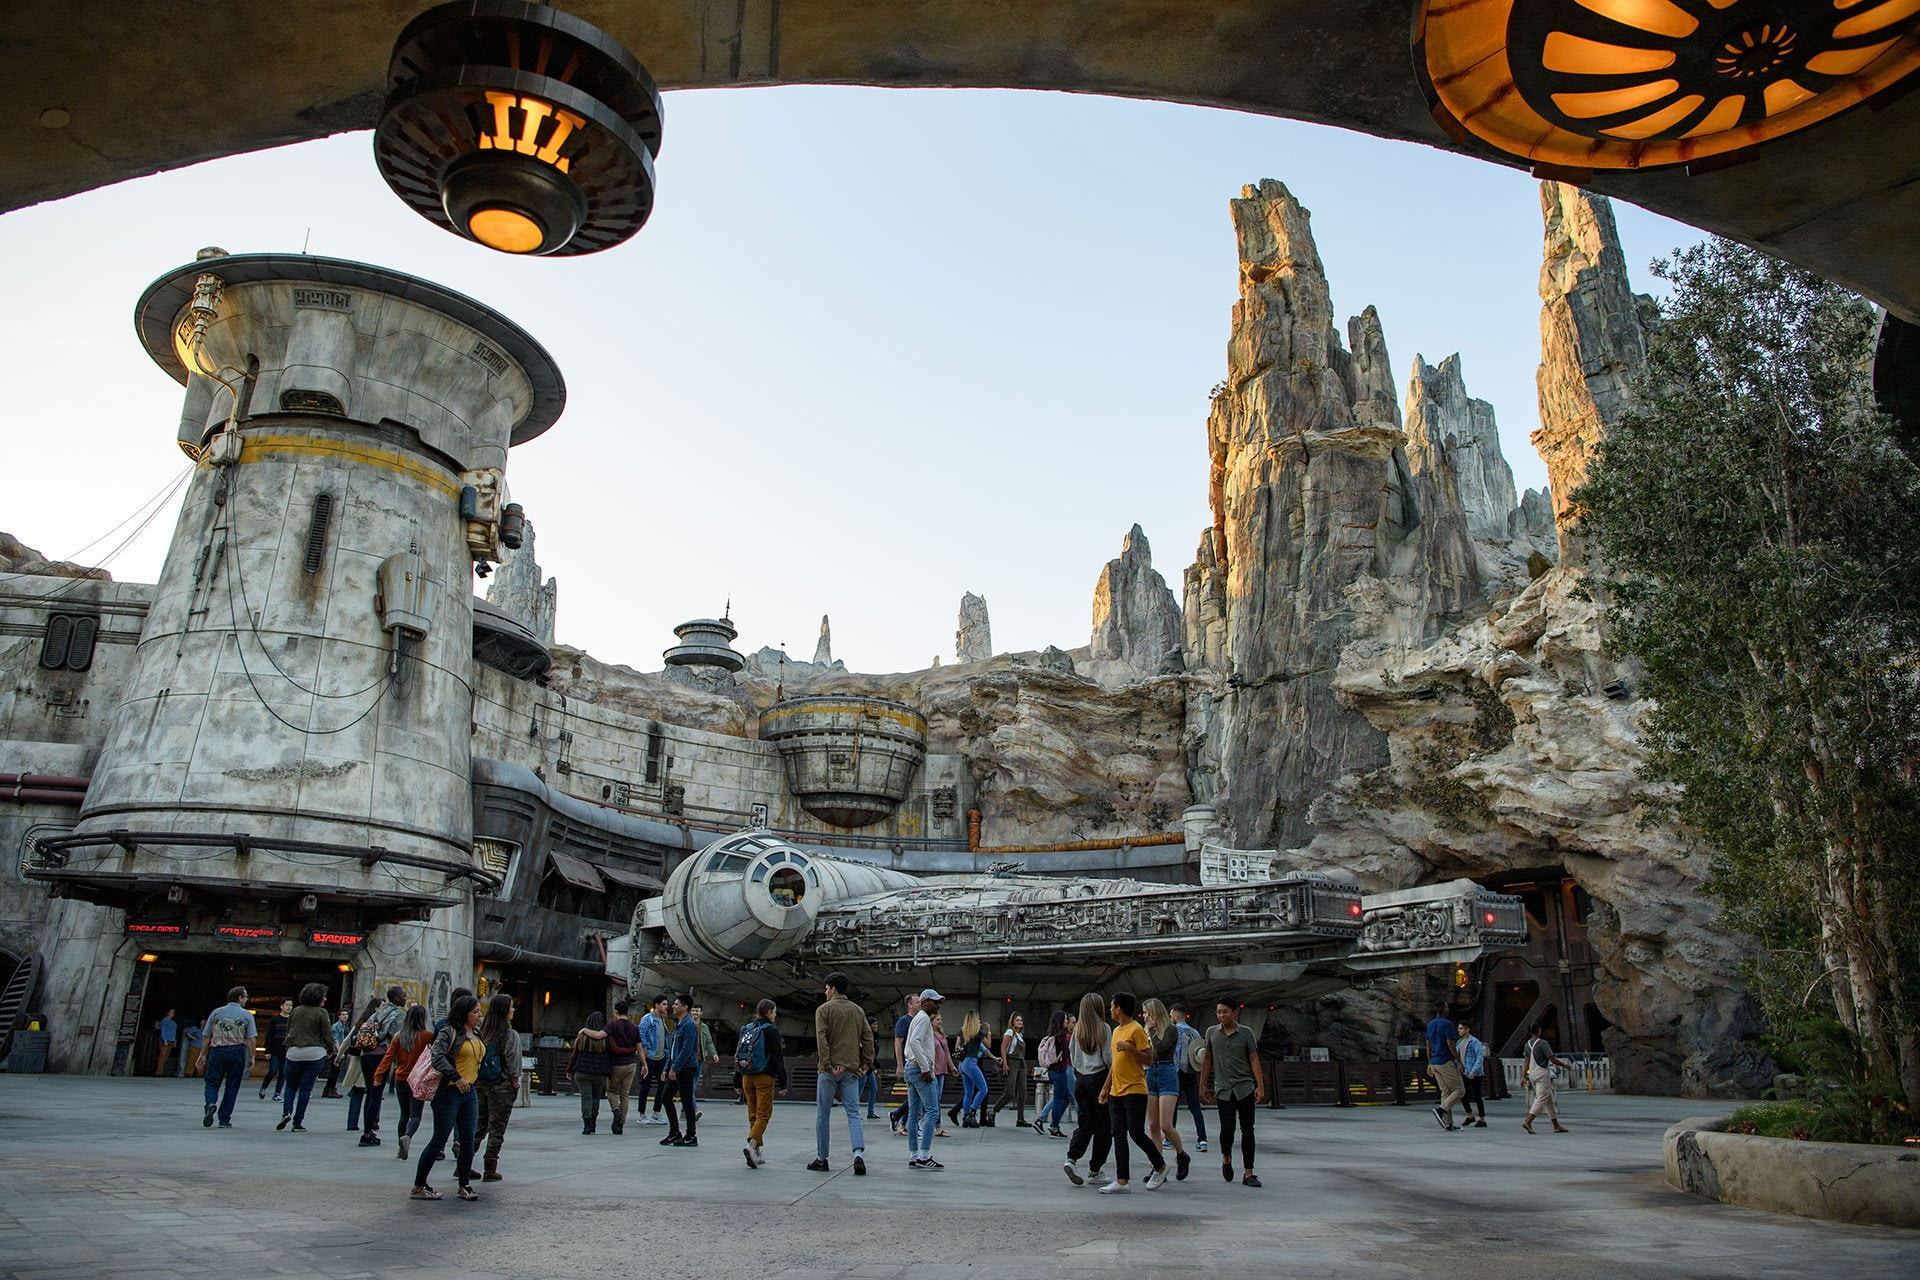 At Black Spire Outpost, a village on the planet of Batuu, Guests will discover two signature attractions. Millennium Falcon: Smugglers Run (pictured), available opening day, and Star Wars: Rise of the Resistance, opening later this year.